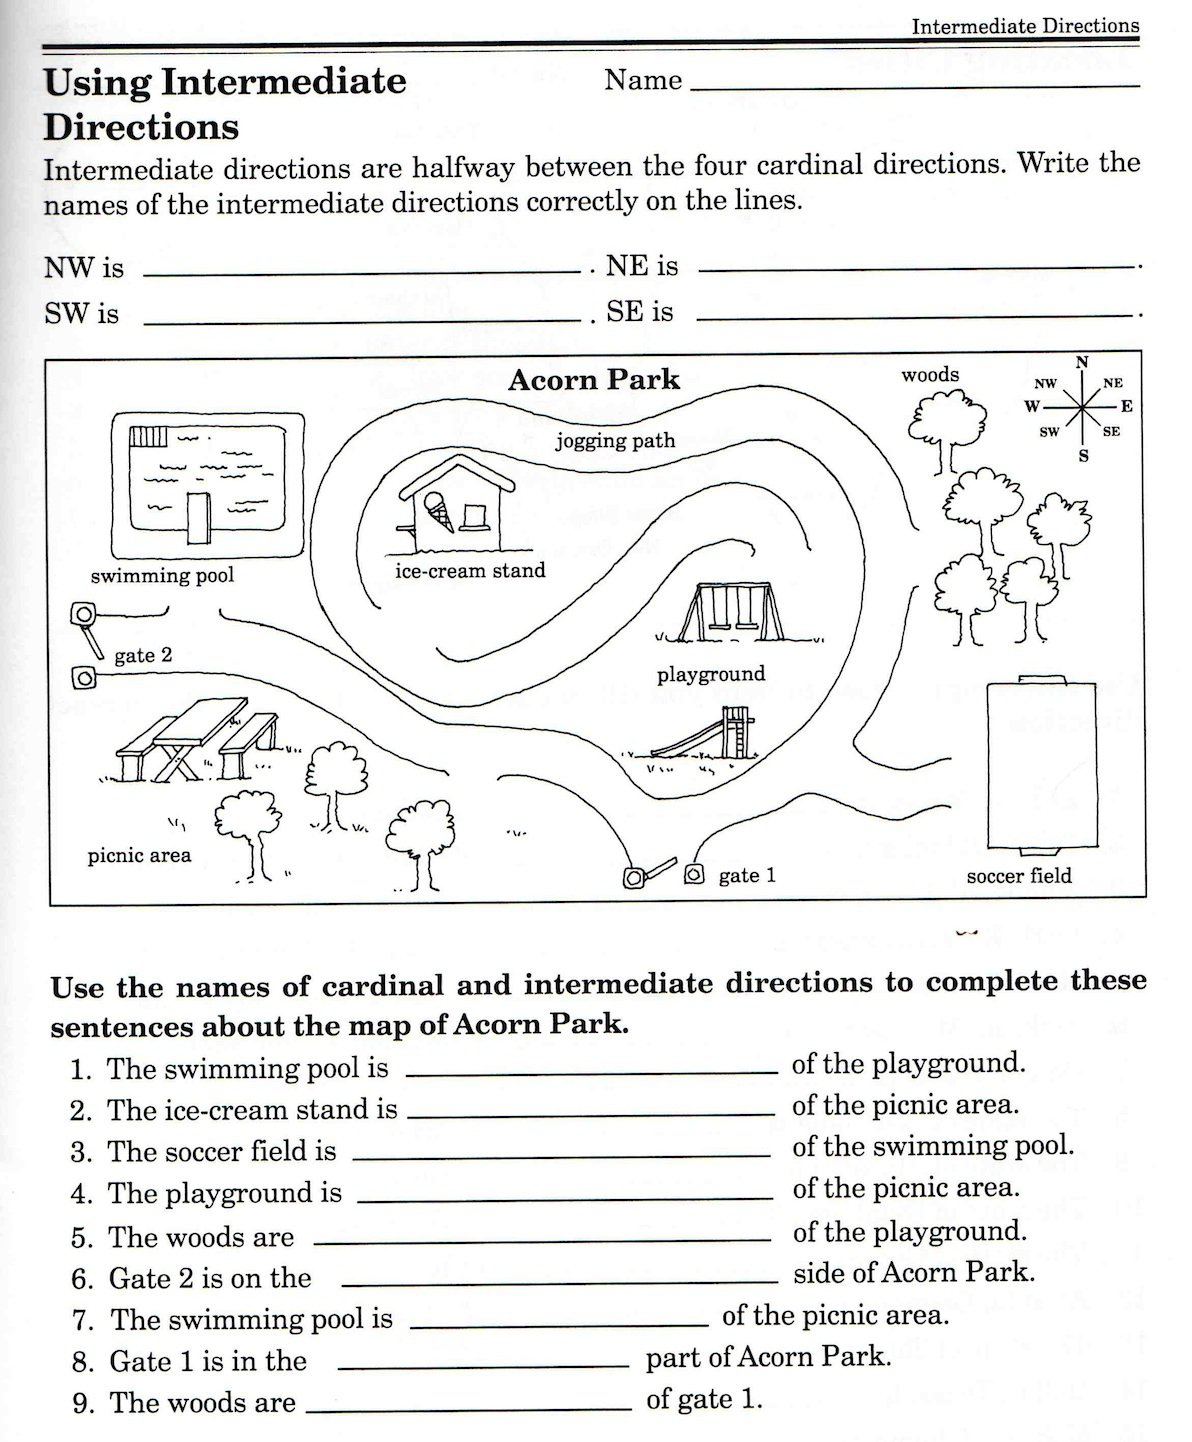 Directions Activity Worksheet Images